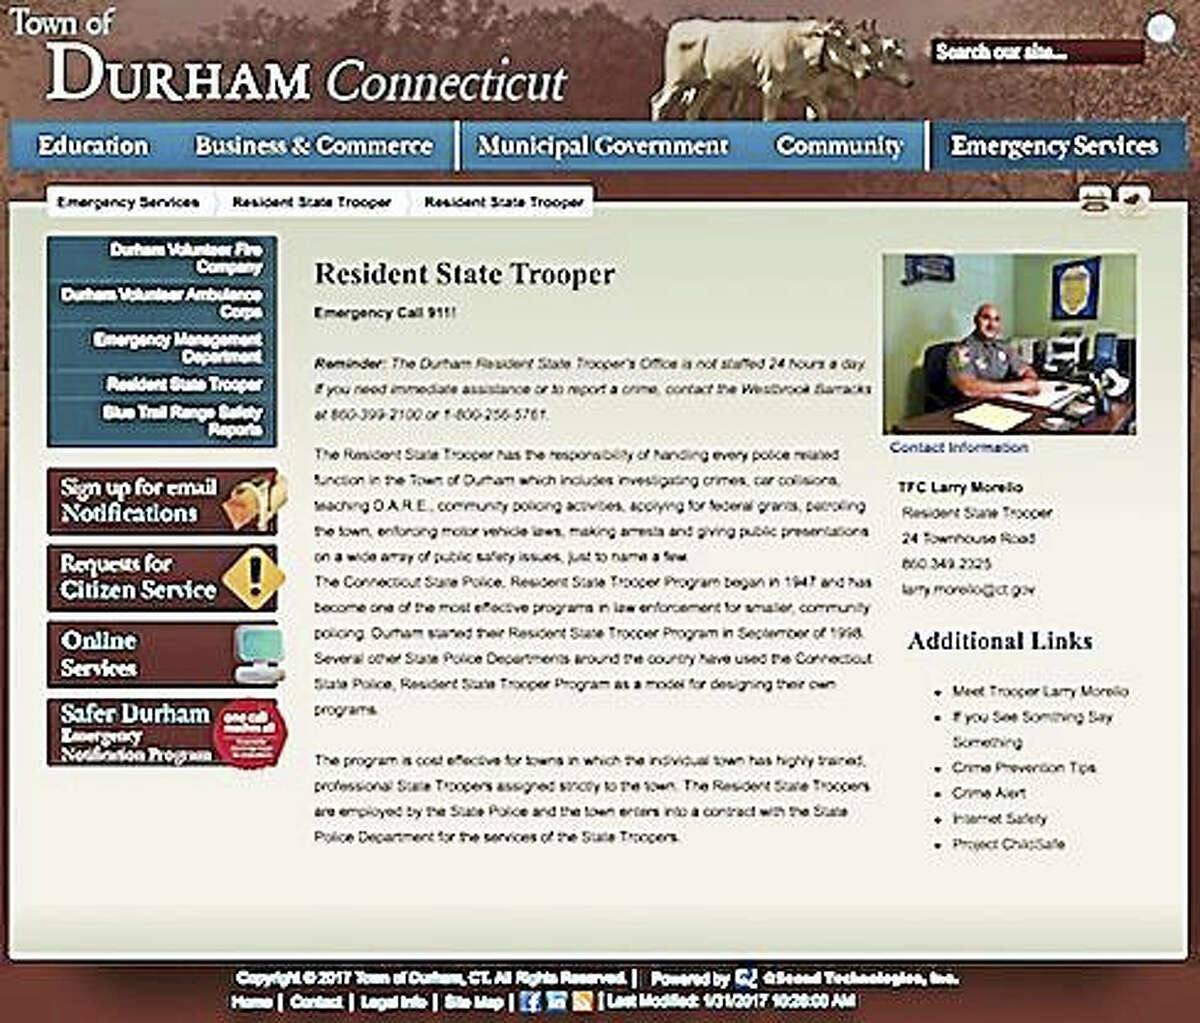 This is the webpage for the resident state trooper assigned to Durham.